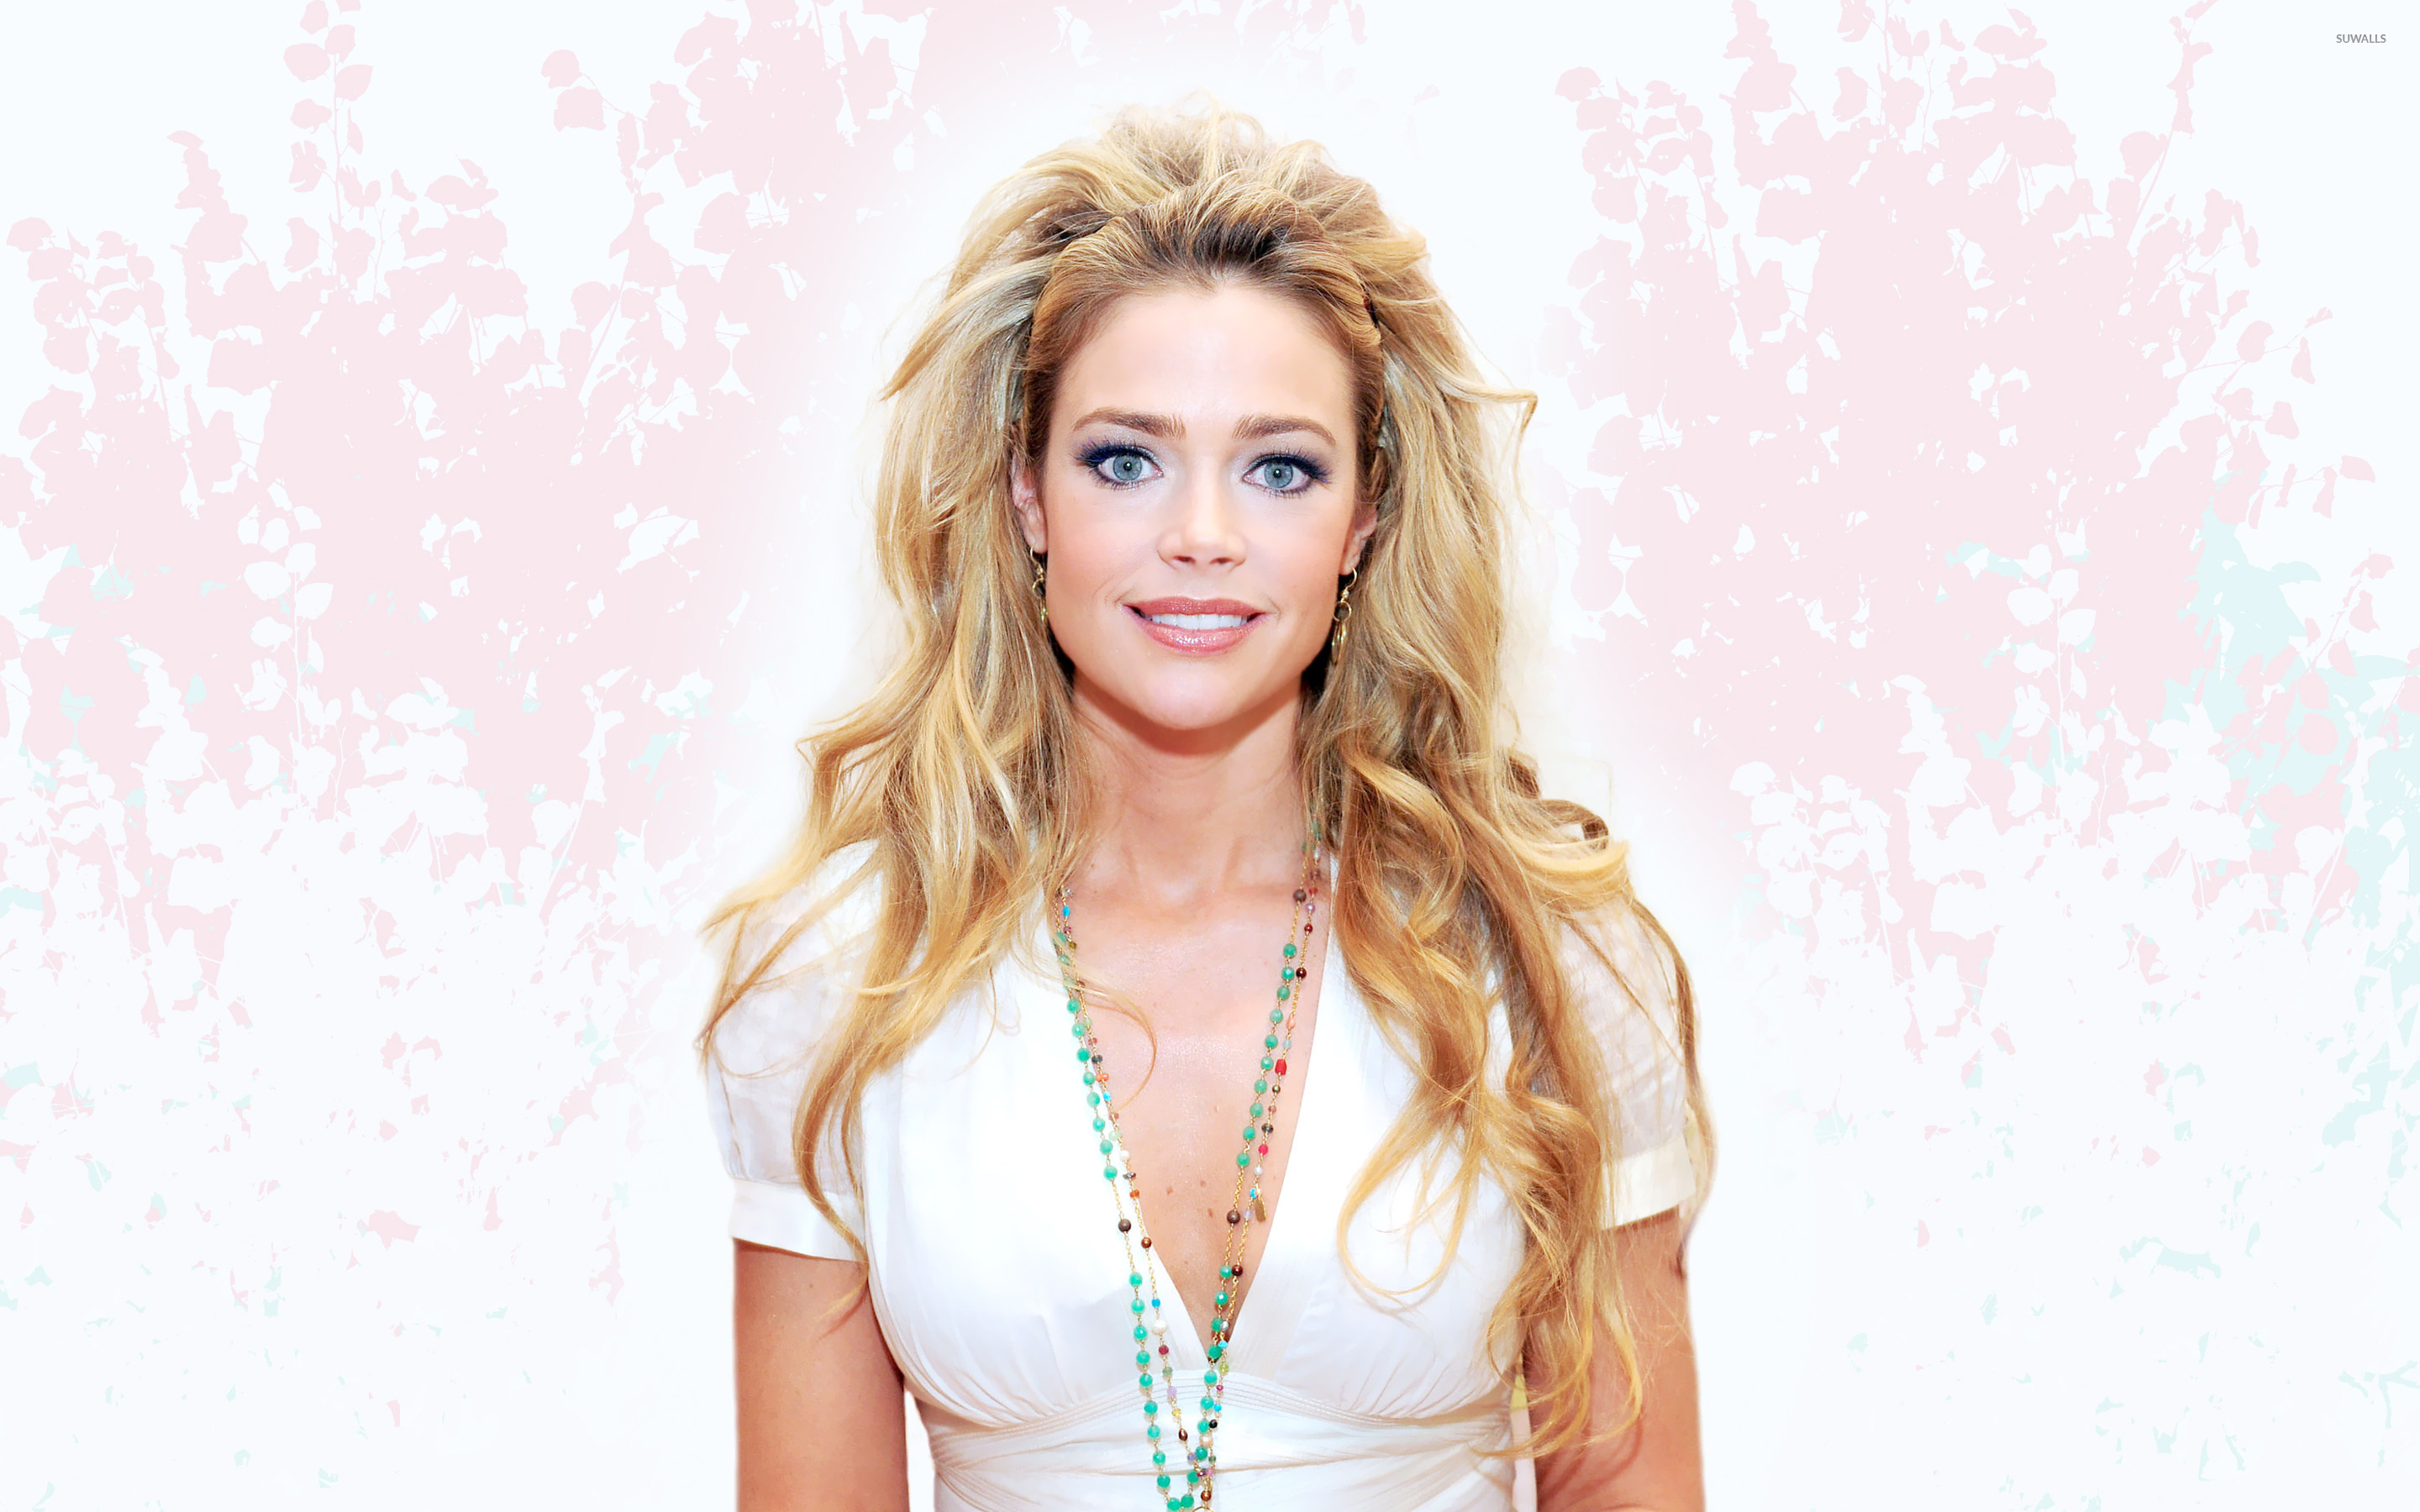 denise richards 1920x1200 wallpapers - photo #28